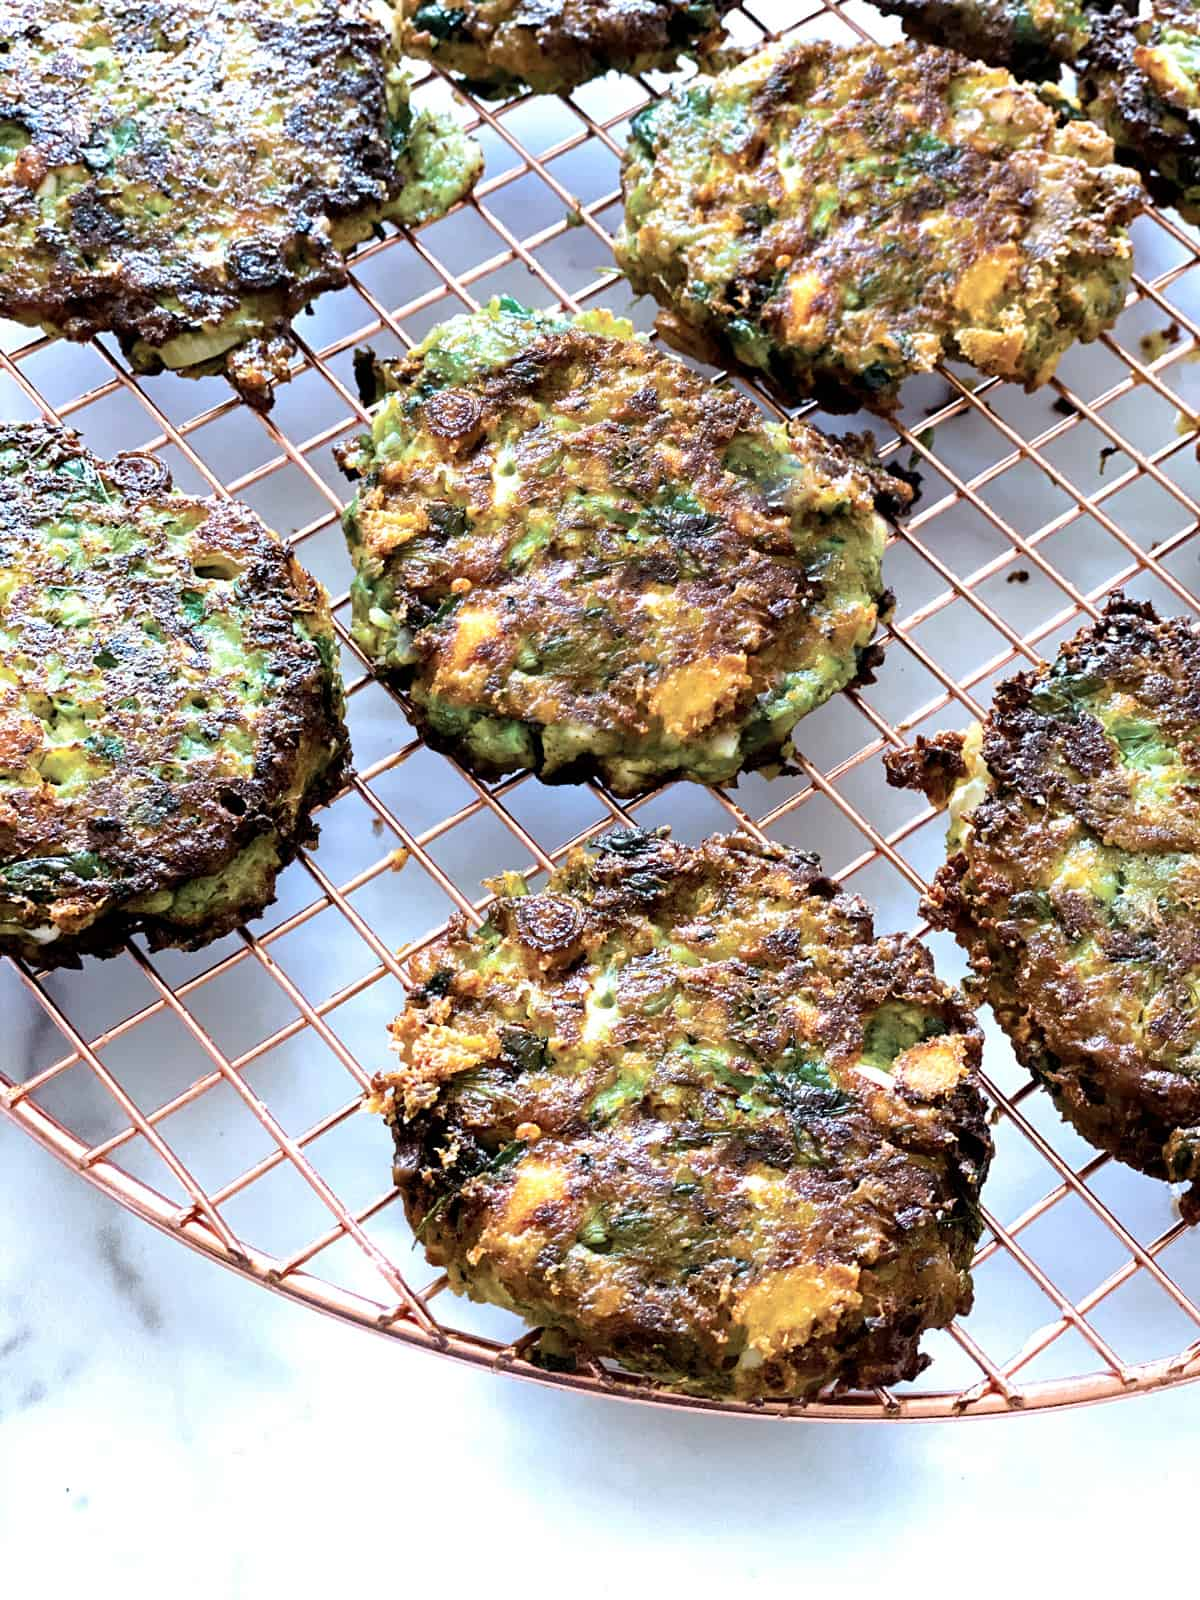 Zucchini pancakes on a wire rack.